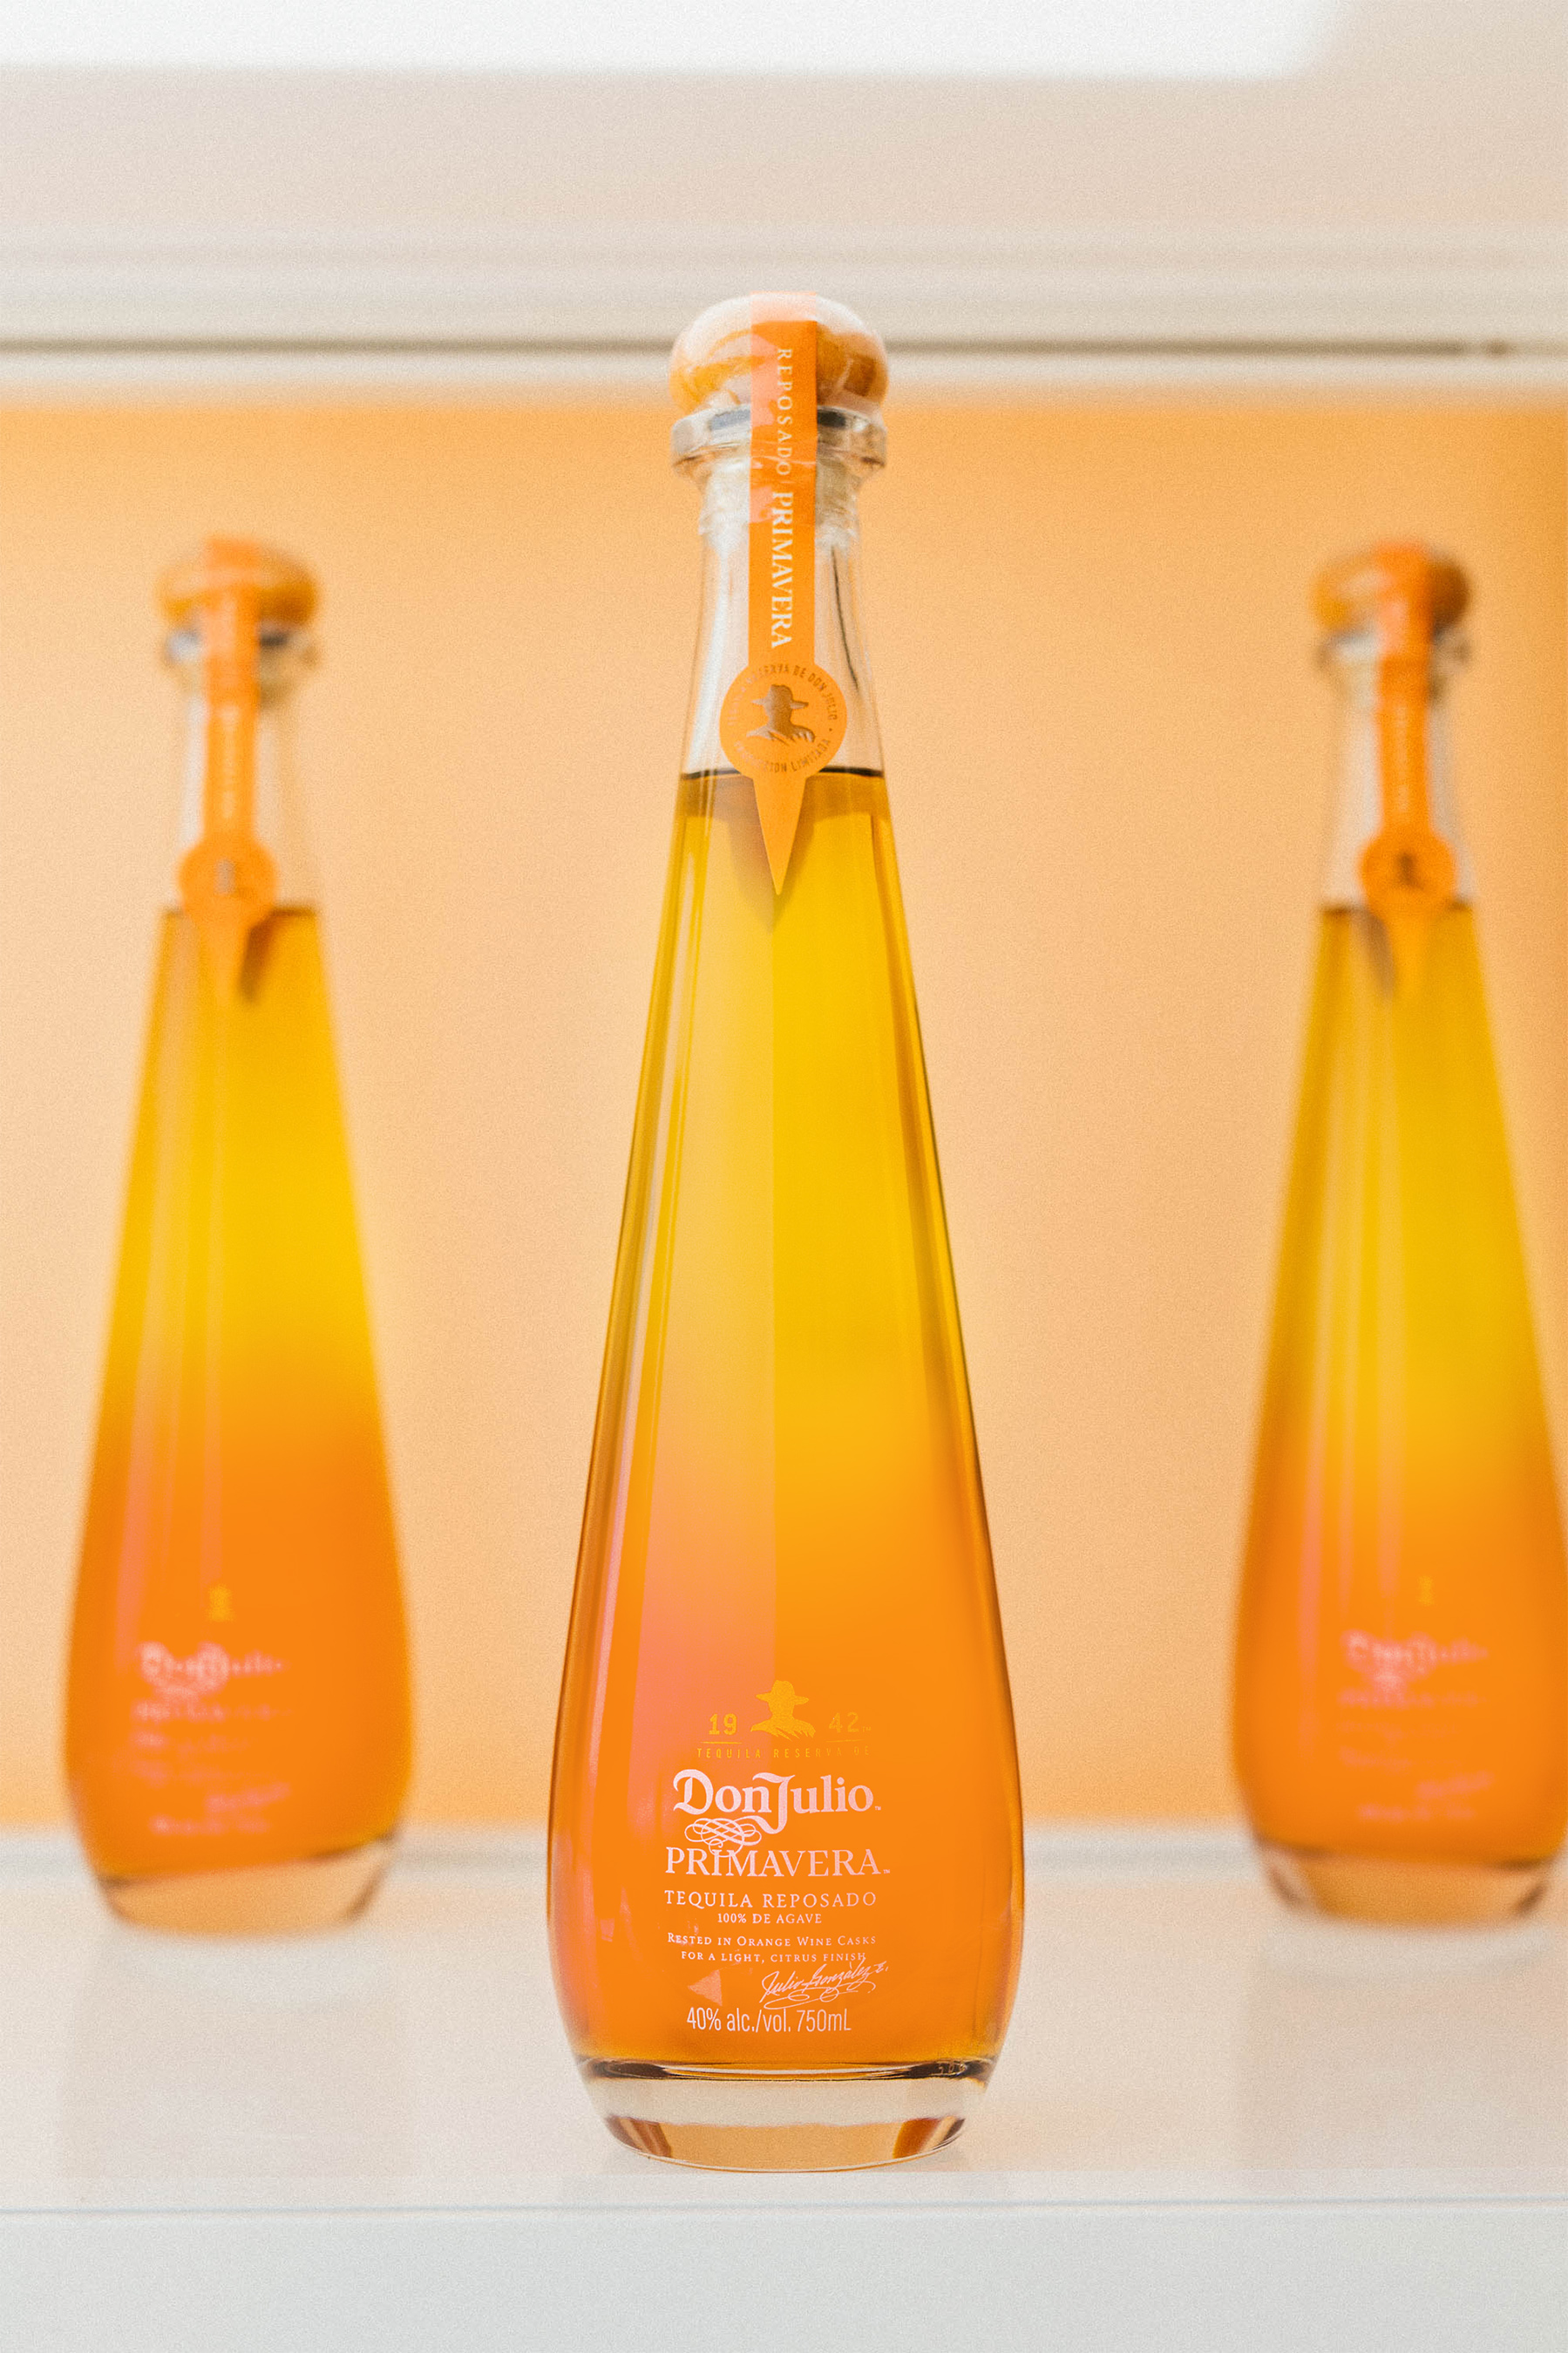 Introducing Tequila Don Julio Primavera - A Limited Edition.